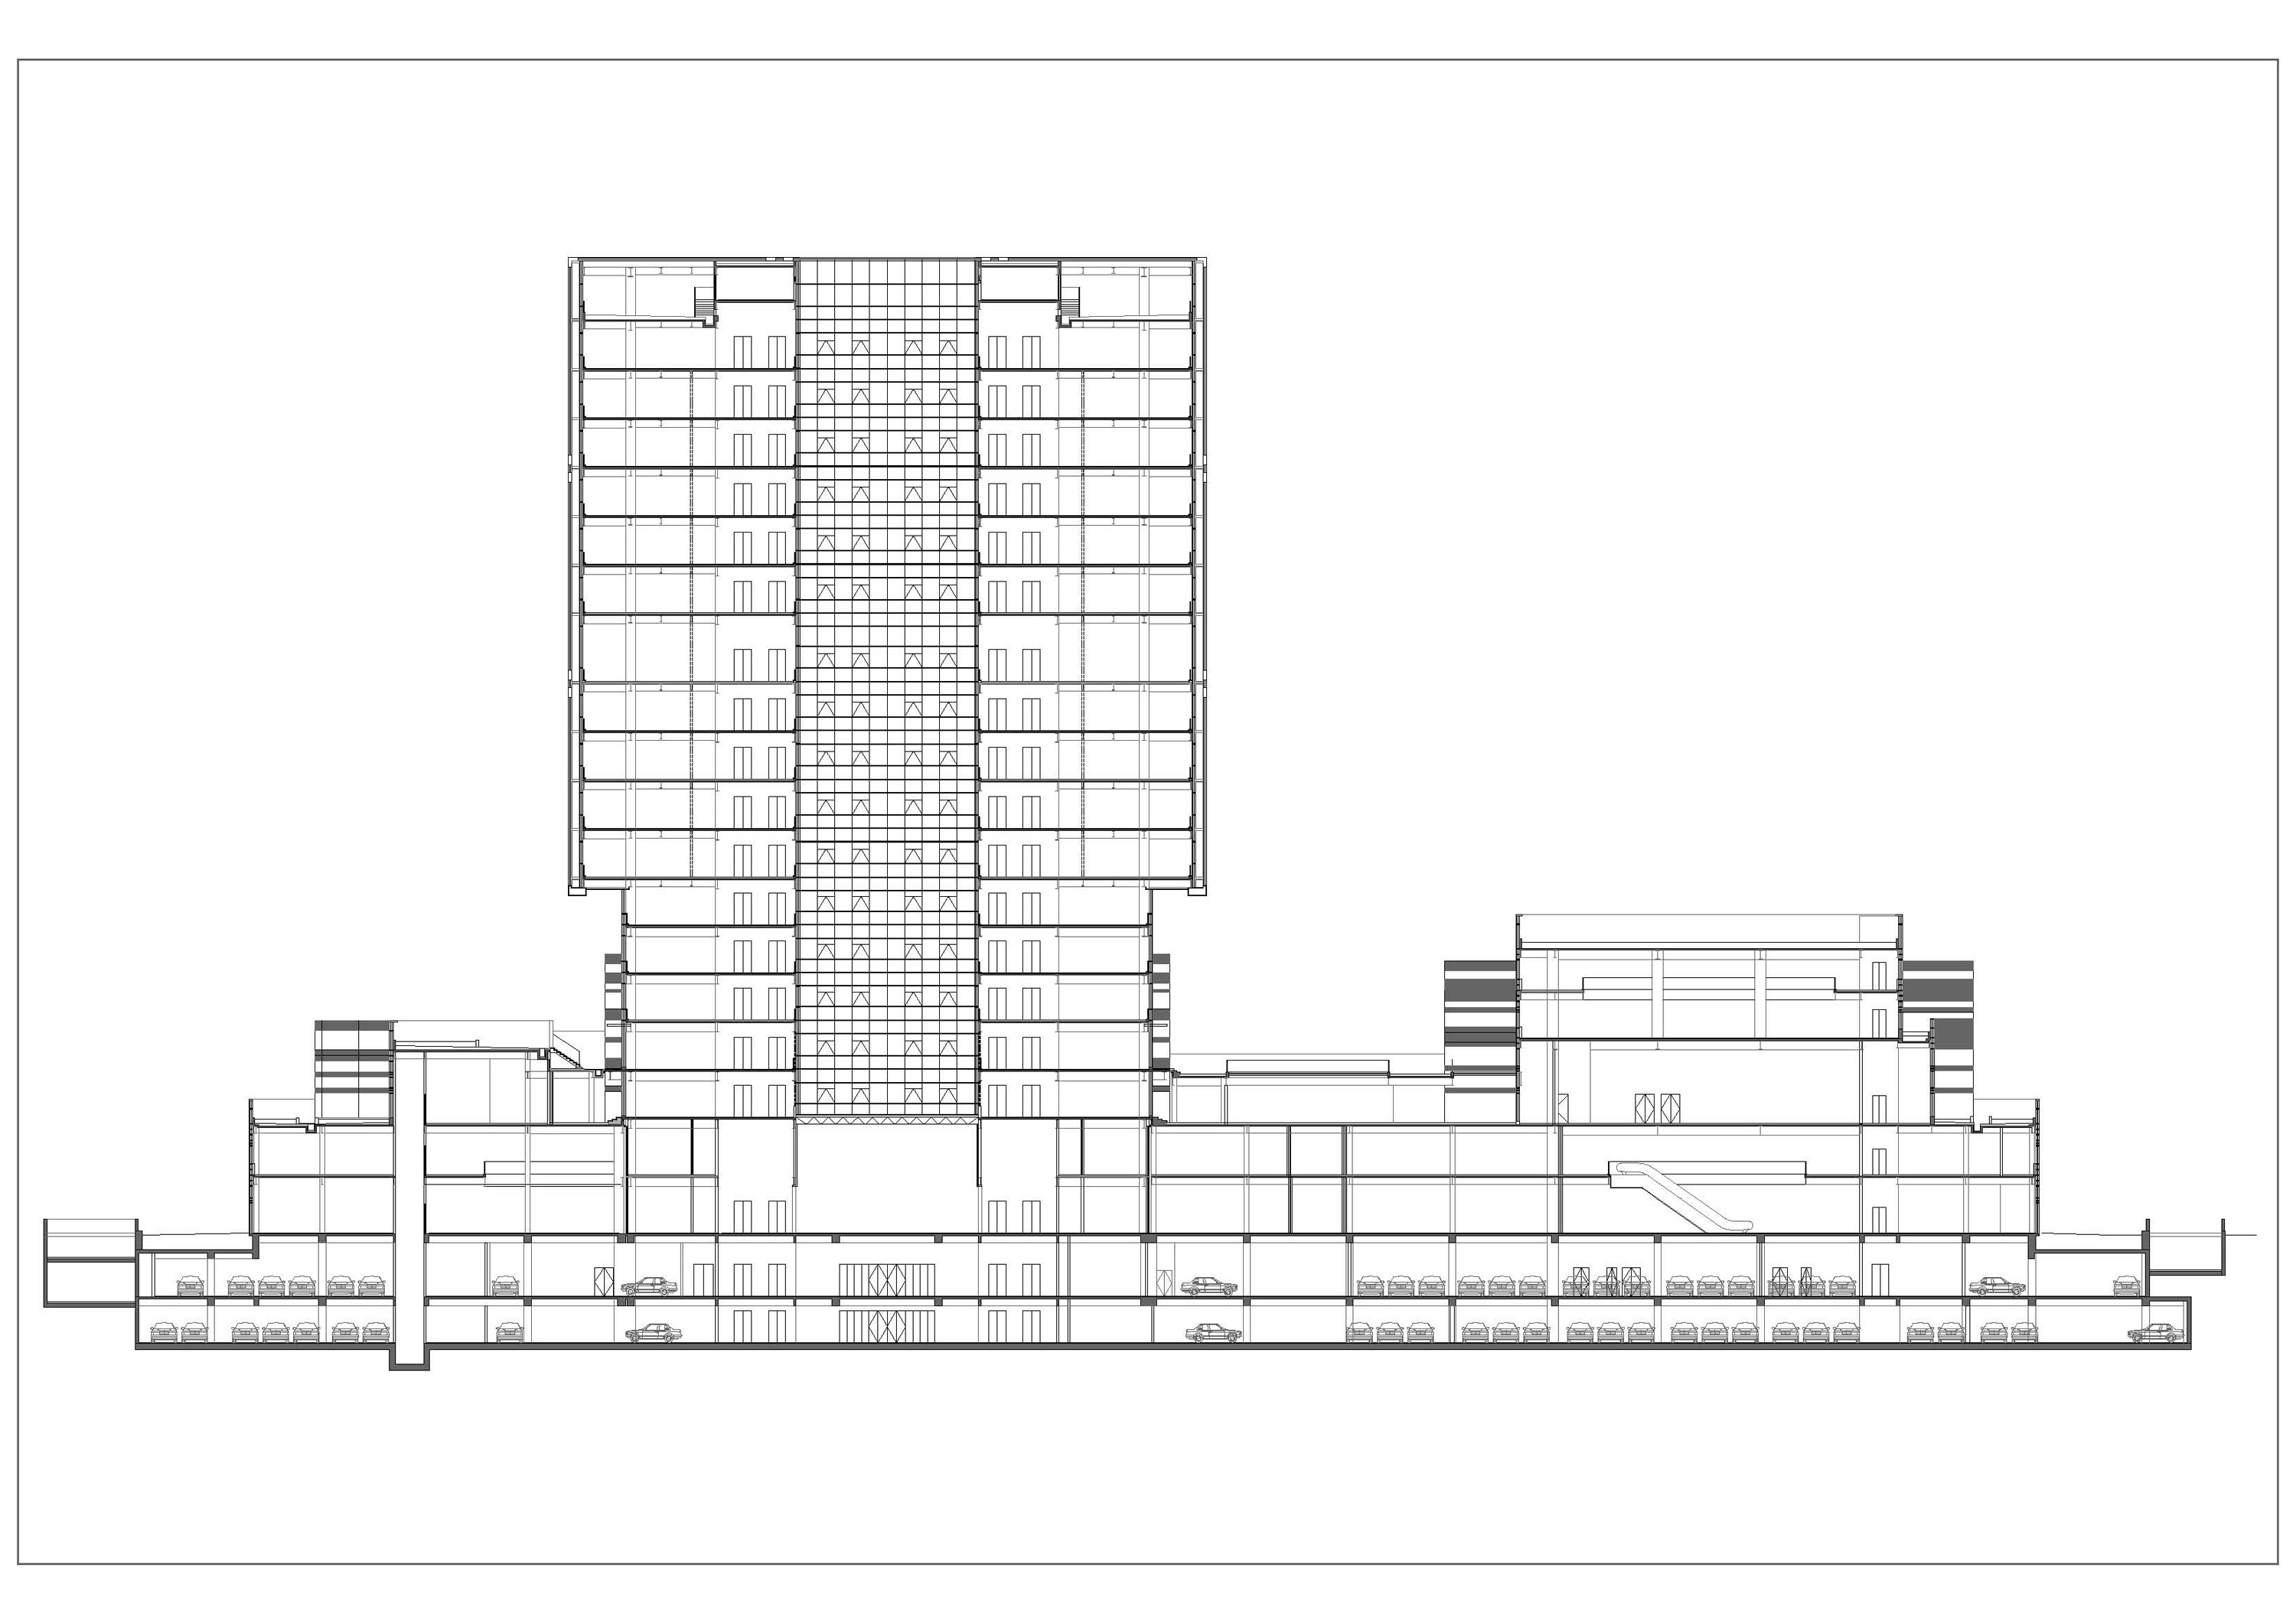 Section A3 The Architectural Design & Research Institute of Zhejiang University Co., Ltd.}